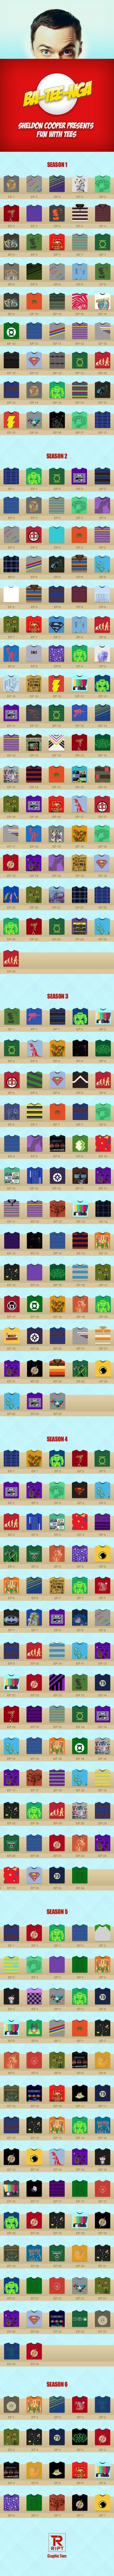 Vamers - FYI - TV - Ba-Tee-nga - Every Single T-shirt Worn by Sheldon Cooper Ever